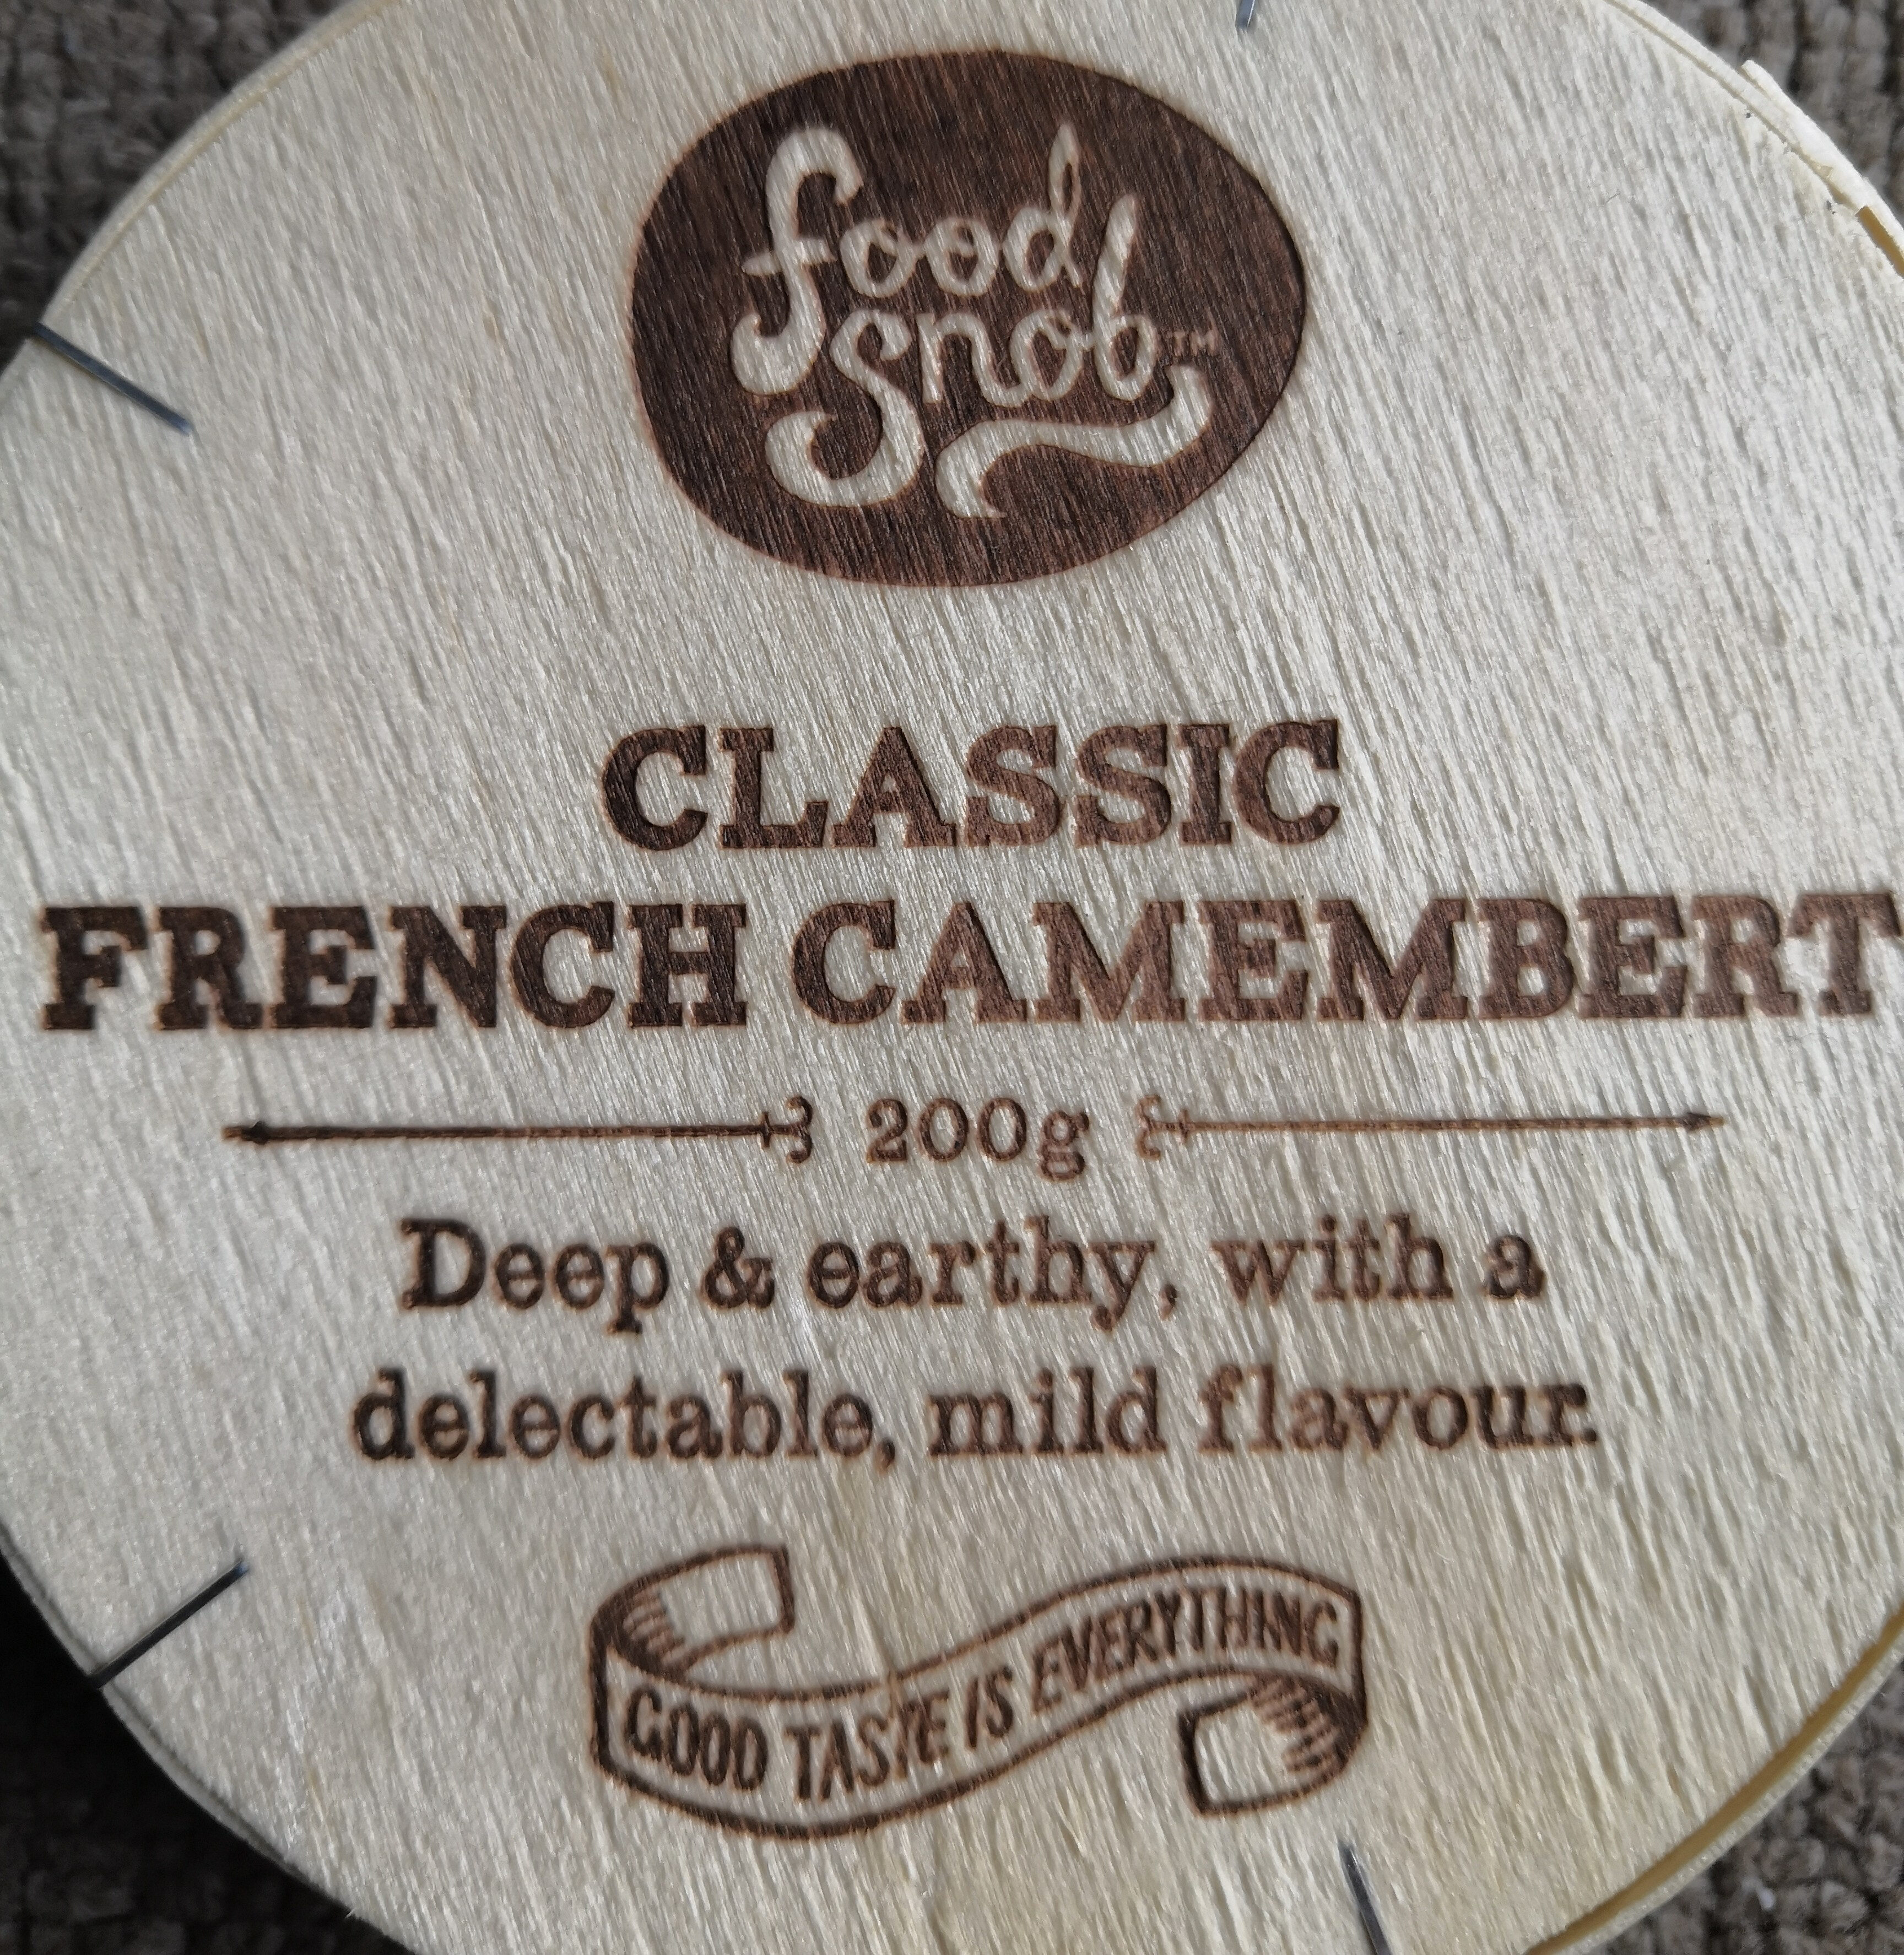 Classic French Camembert - Produit - en